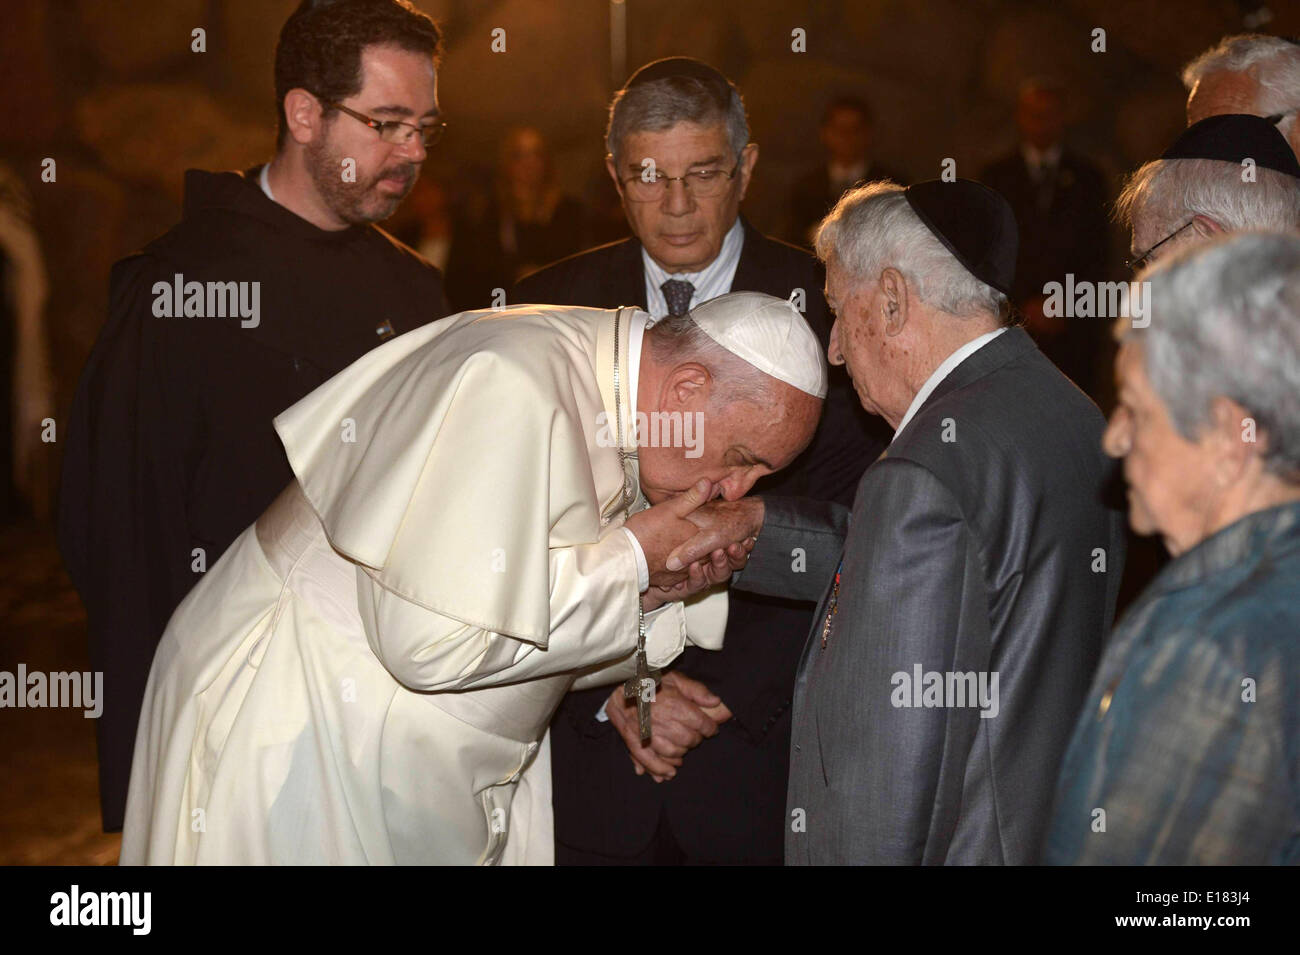 Jerusalem. 26th May, 2014. Pope Francis visits the Yad Vashem Holocaust Museum in Jerusalem, attended by IsraeliStock Photo